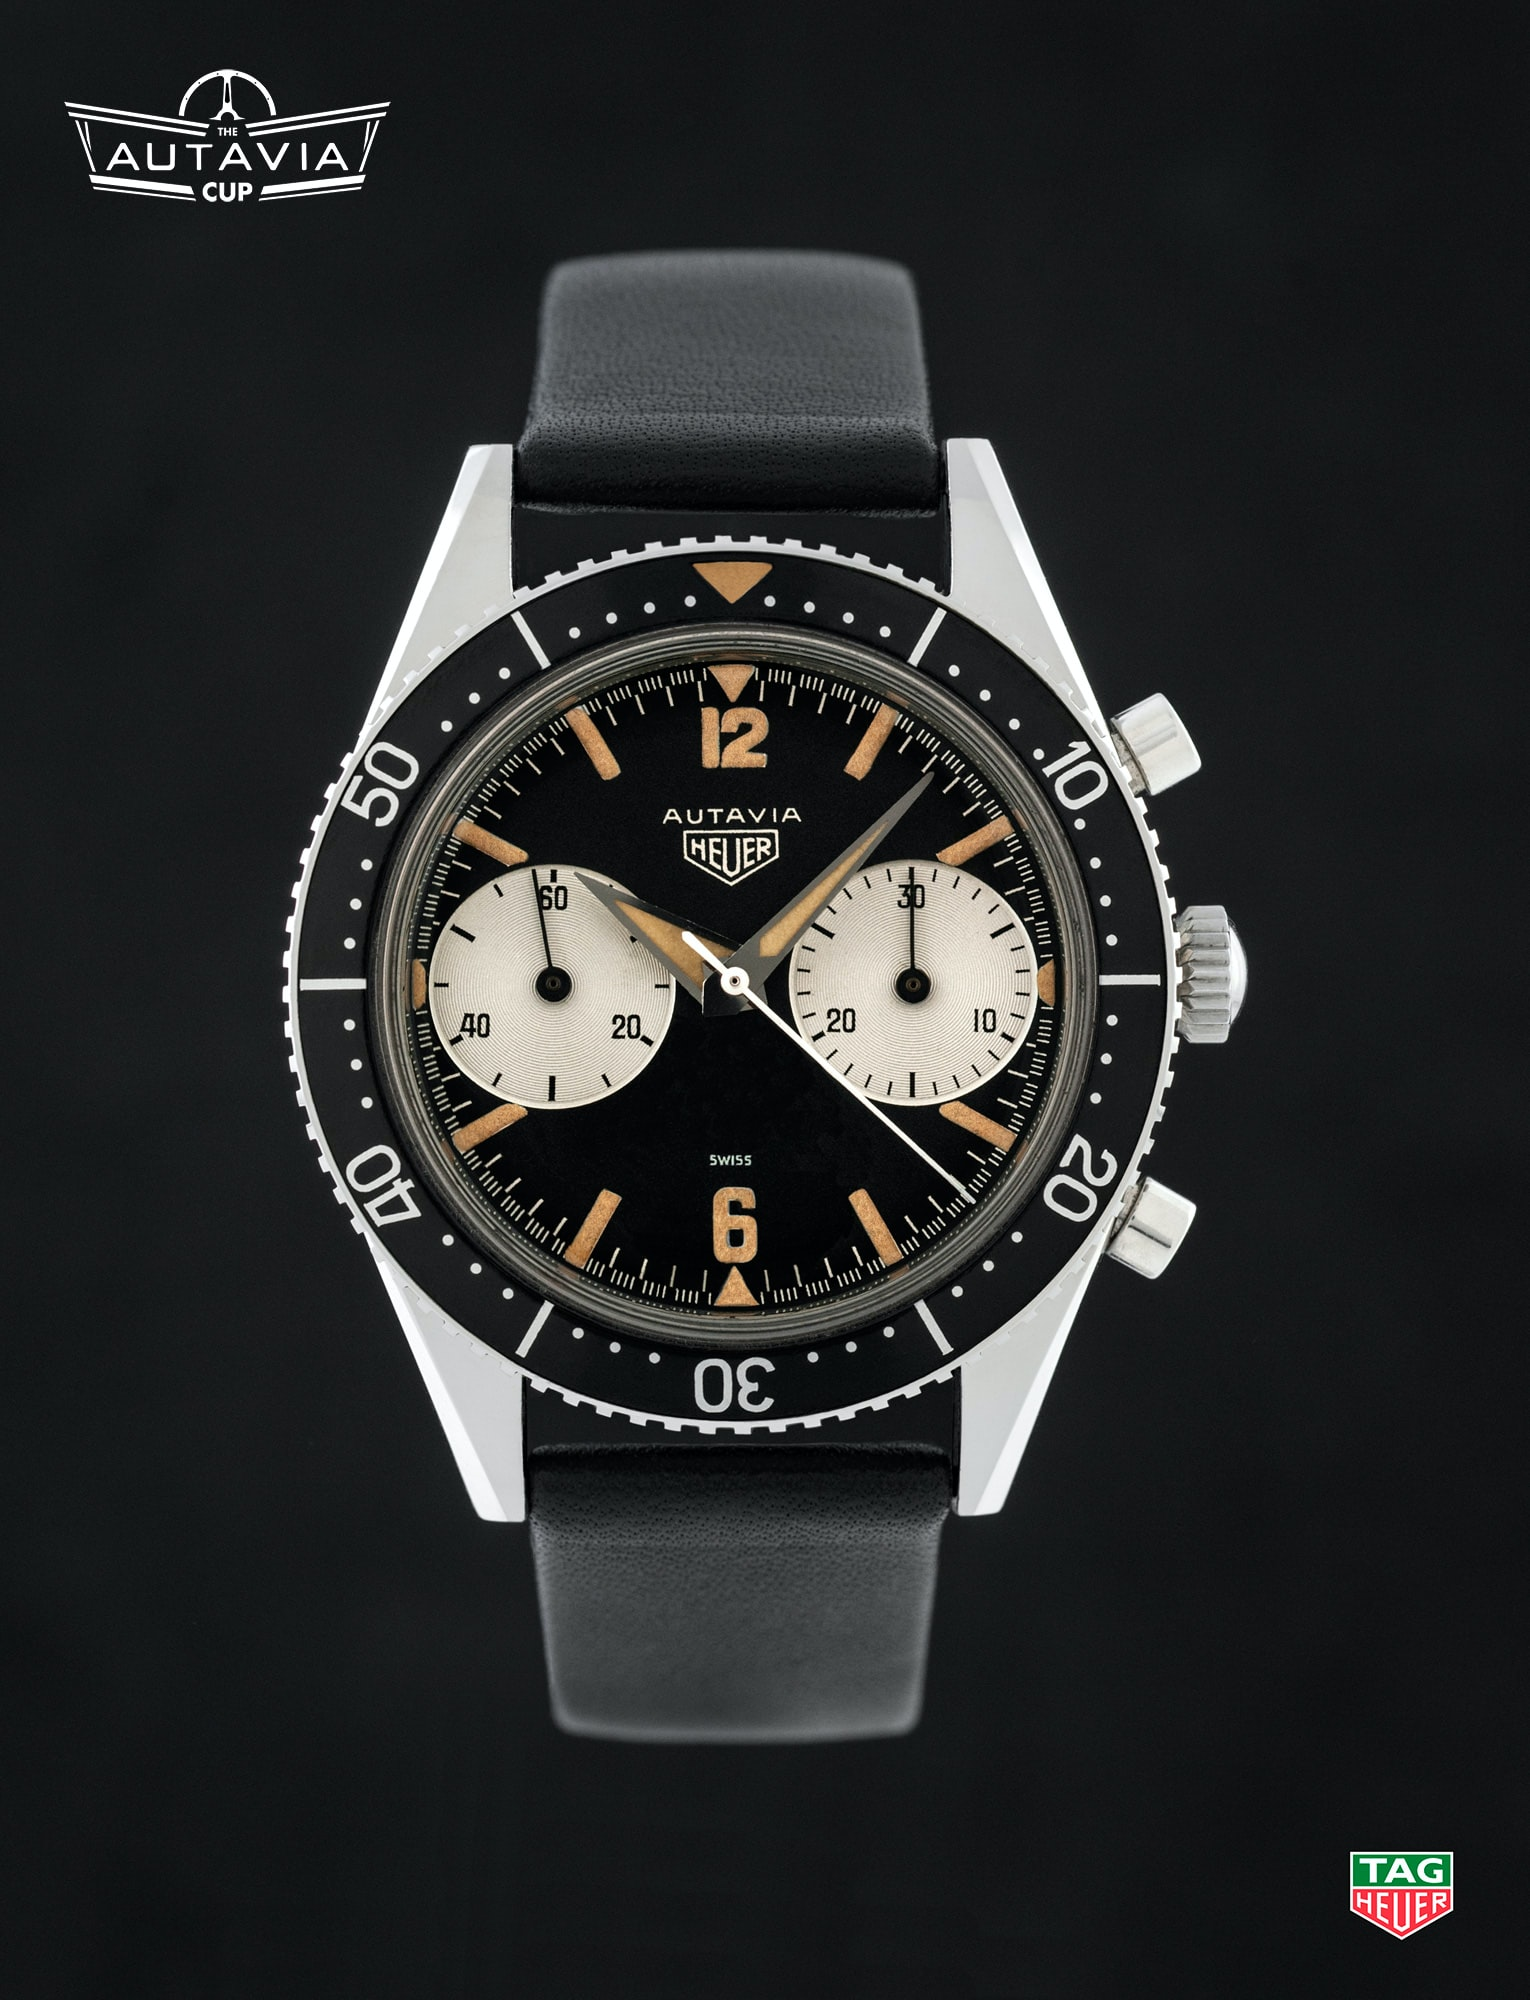 Heuer Autavia Ref. 3646 Mk1 Steel-M TAG Heuer Will Relaunch The Autavia In 2017 – And Fans Get To Choose The Model TAG Heuer Will Relaunch The Autavia In 2017 – And Fans Get To Choose The Model 04 3646 Mk1 Steel M